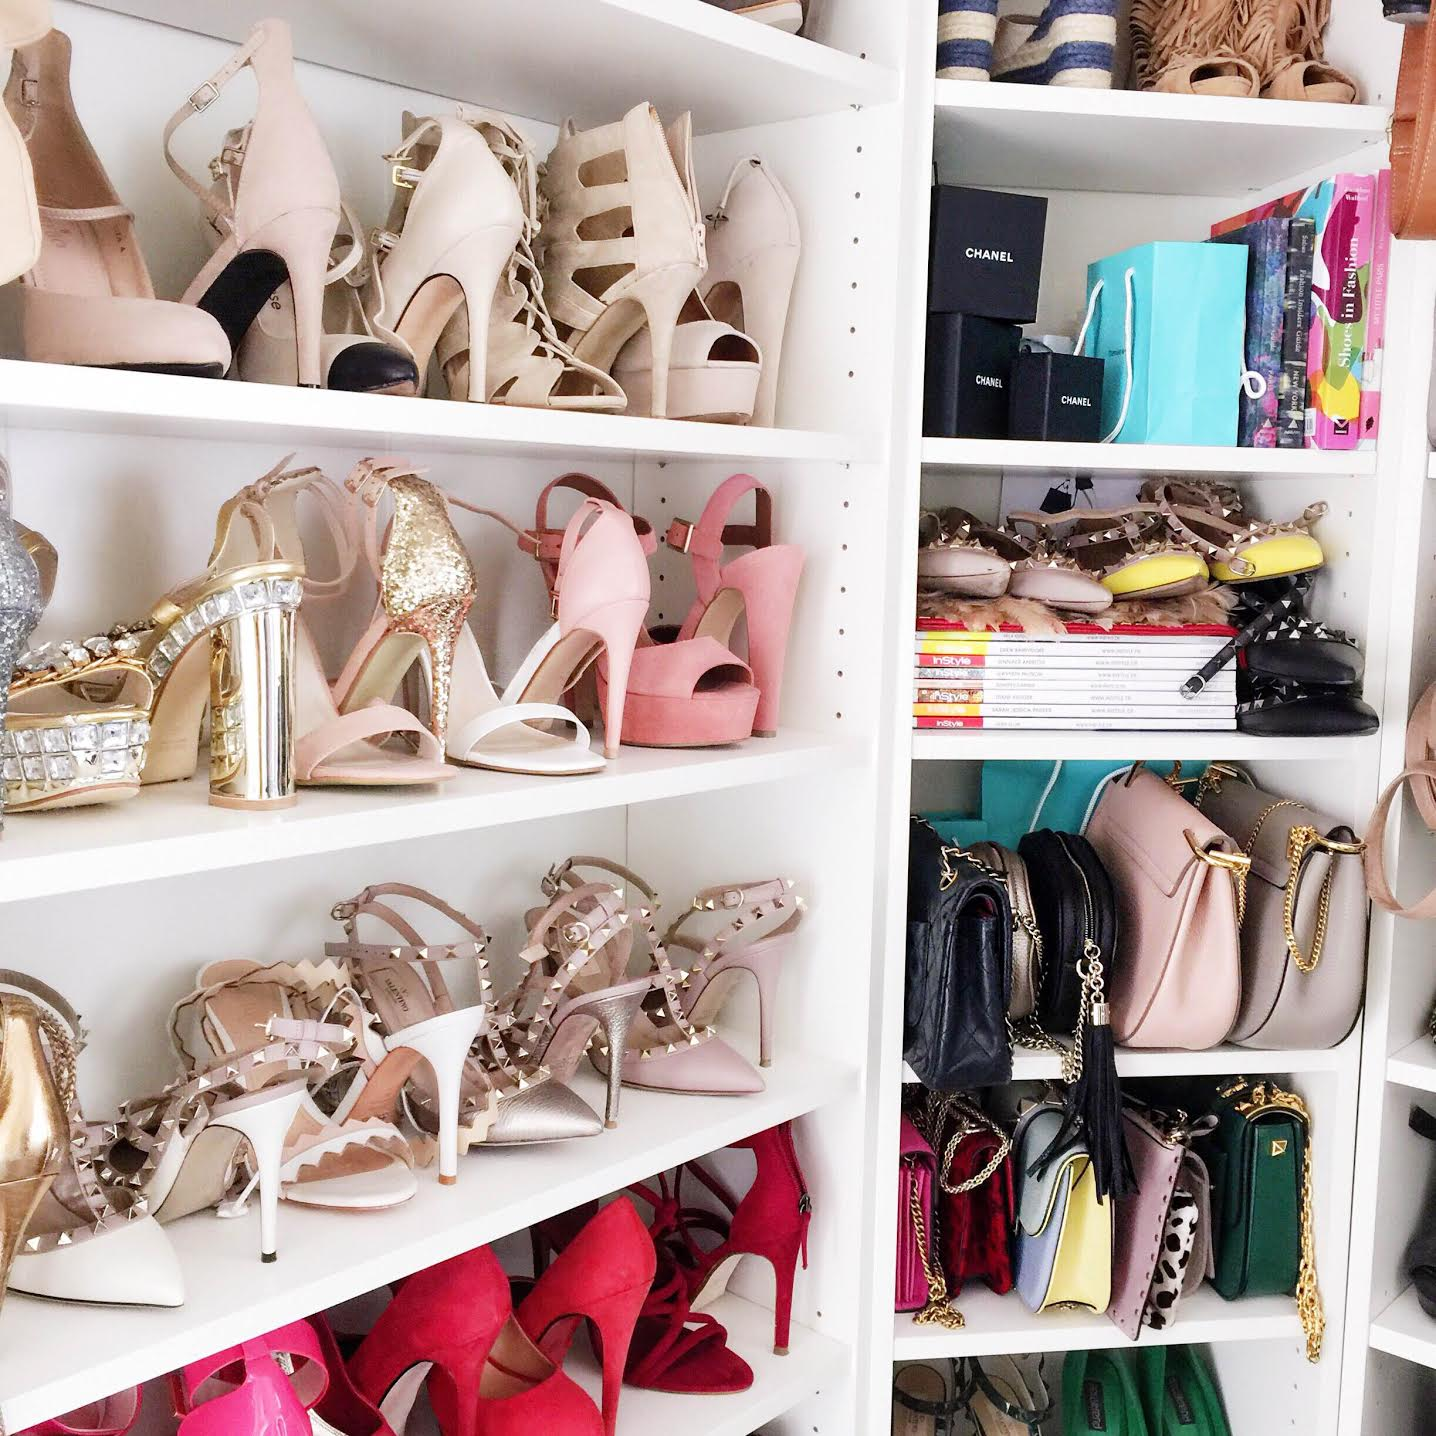 shoe-closet-fashionhippieloves-walkincloset